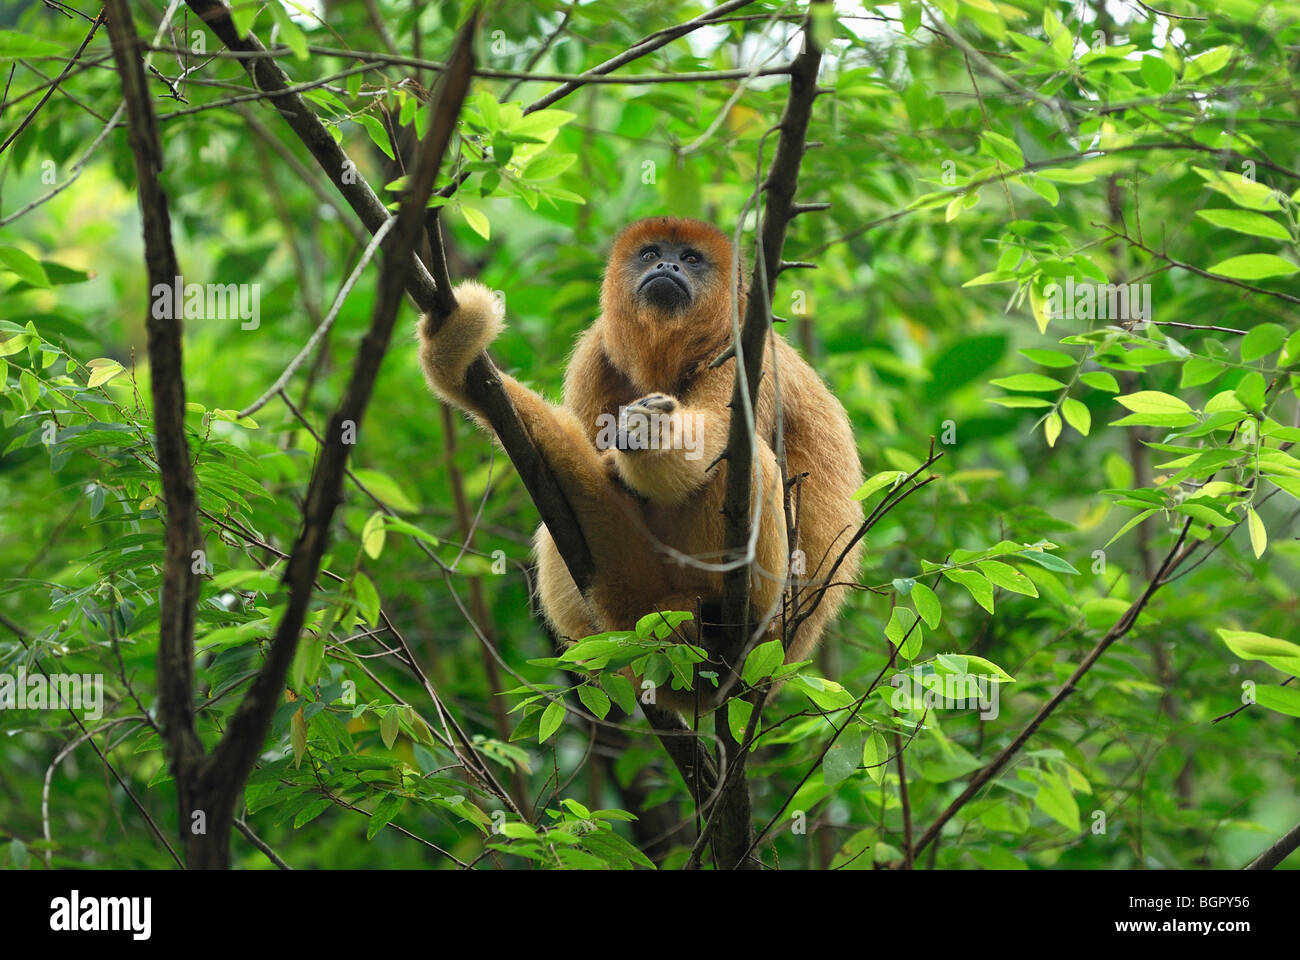 Le noir et or singe hurleur (Alouatta caraya), adulte, Brésil Photo Stock